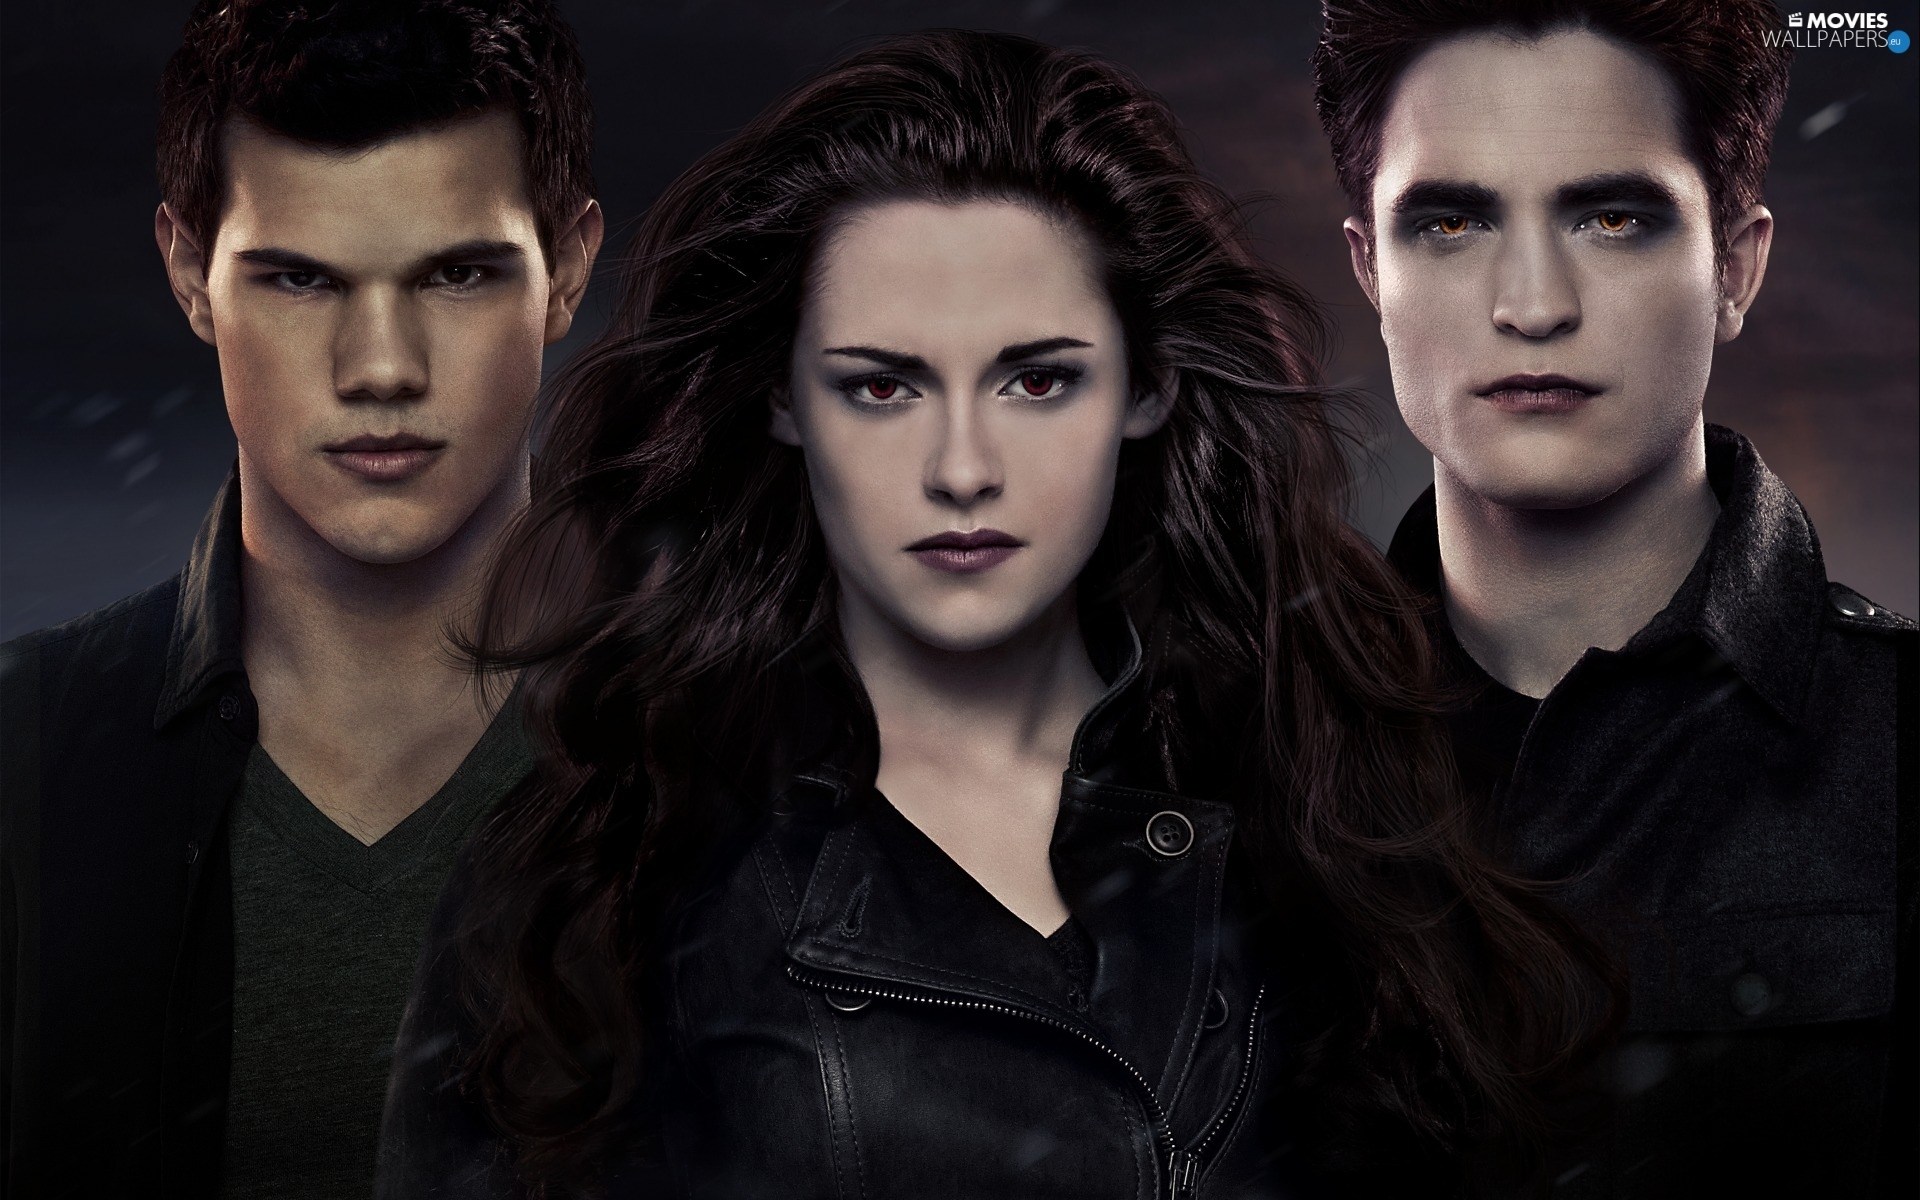 Kristen Stewart, Actors, Taylor Lautner, saga, Robert Pattinson, twilight